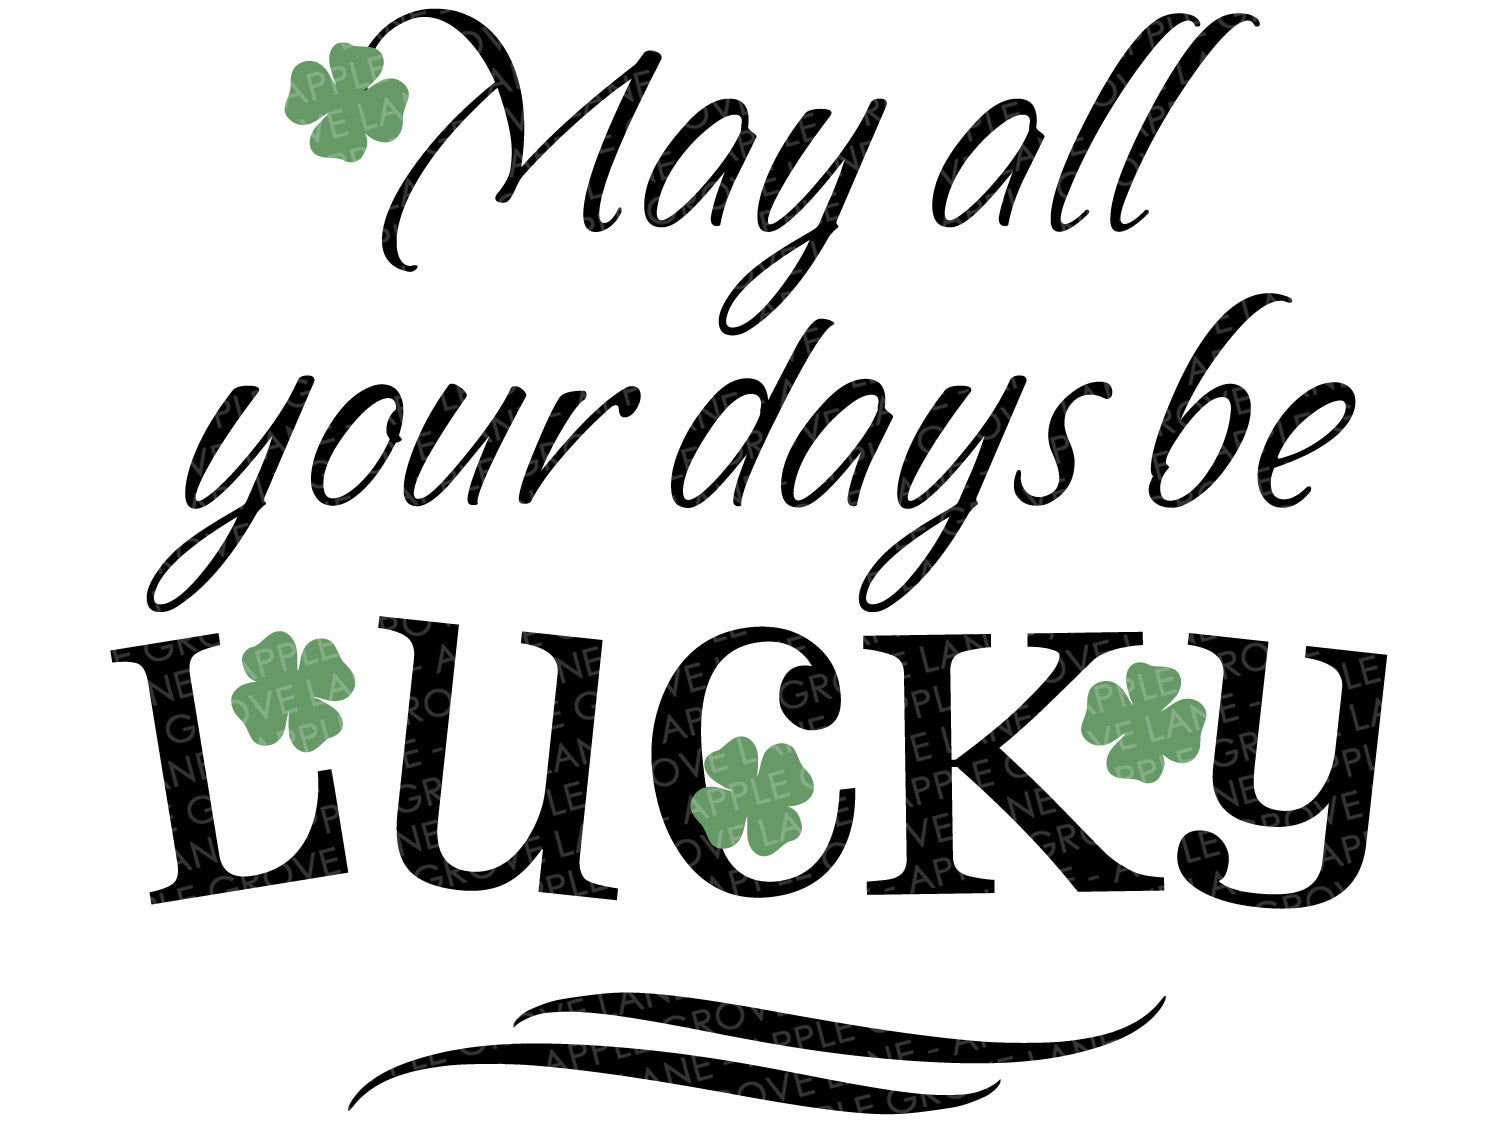 May All Your Days Be Lucky Svg - Lucky Svg - Luck Svg - Clover Svg - St Pattys Day Svg - St Patricks Day Svg - Luck Vector - Svg Eps Dxf Png